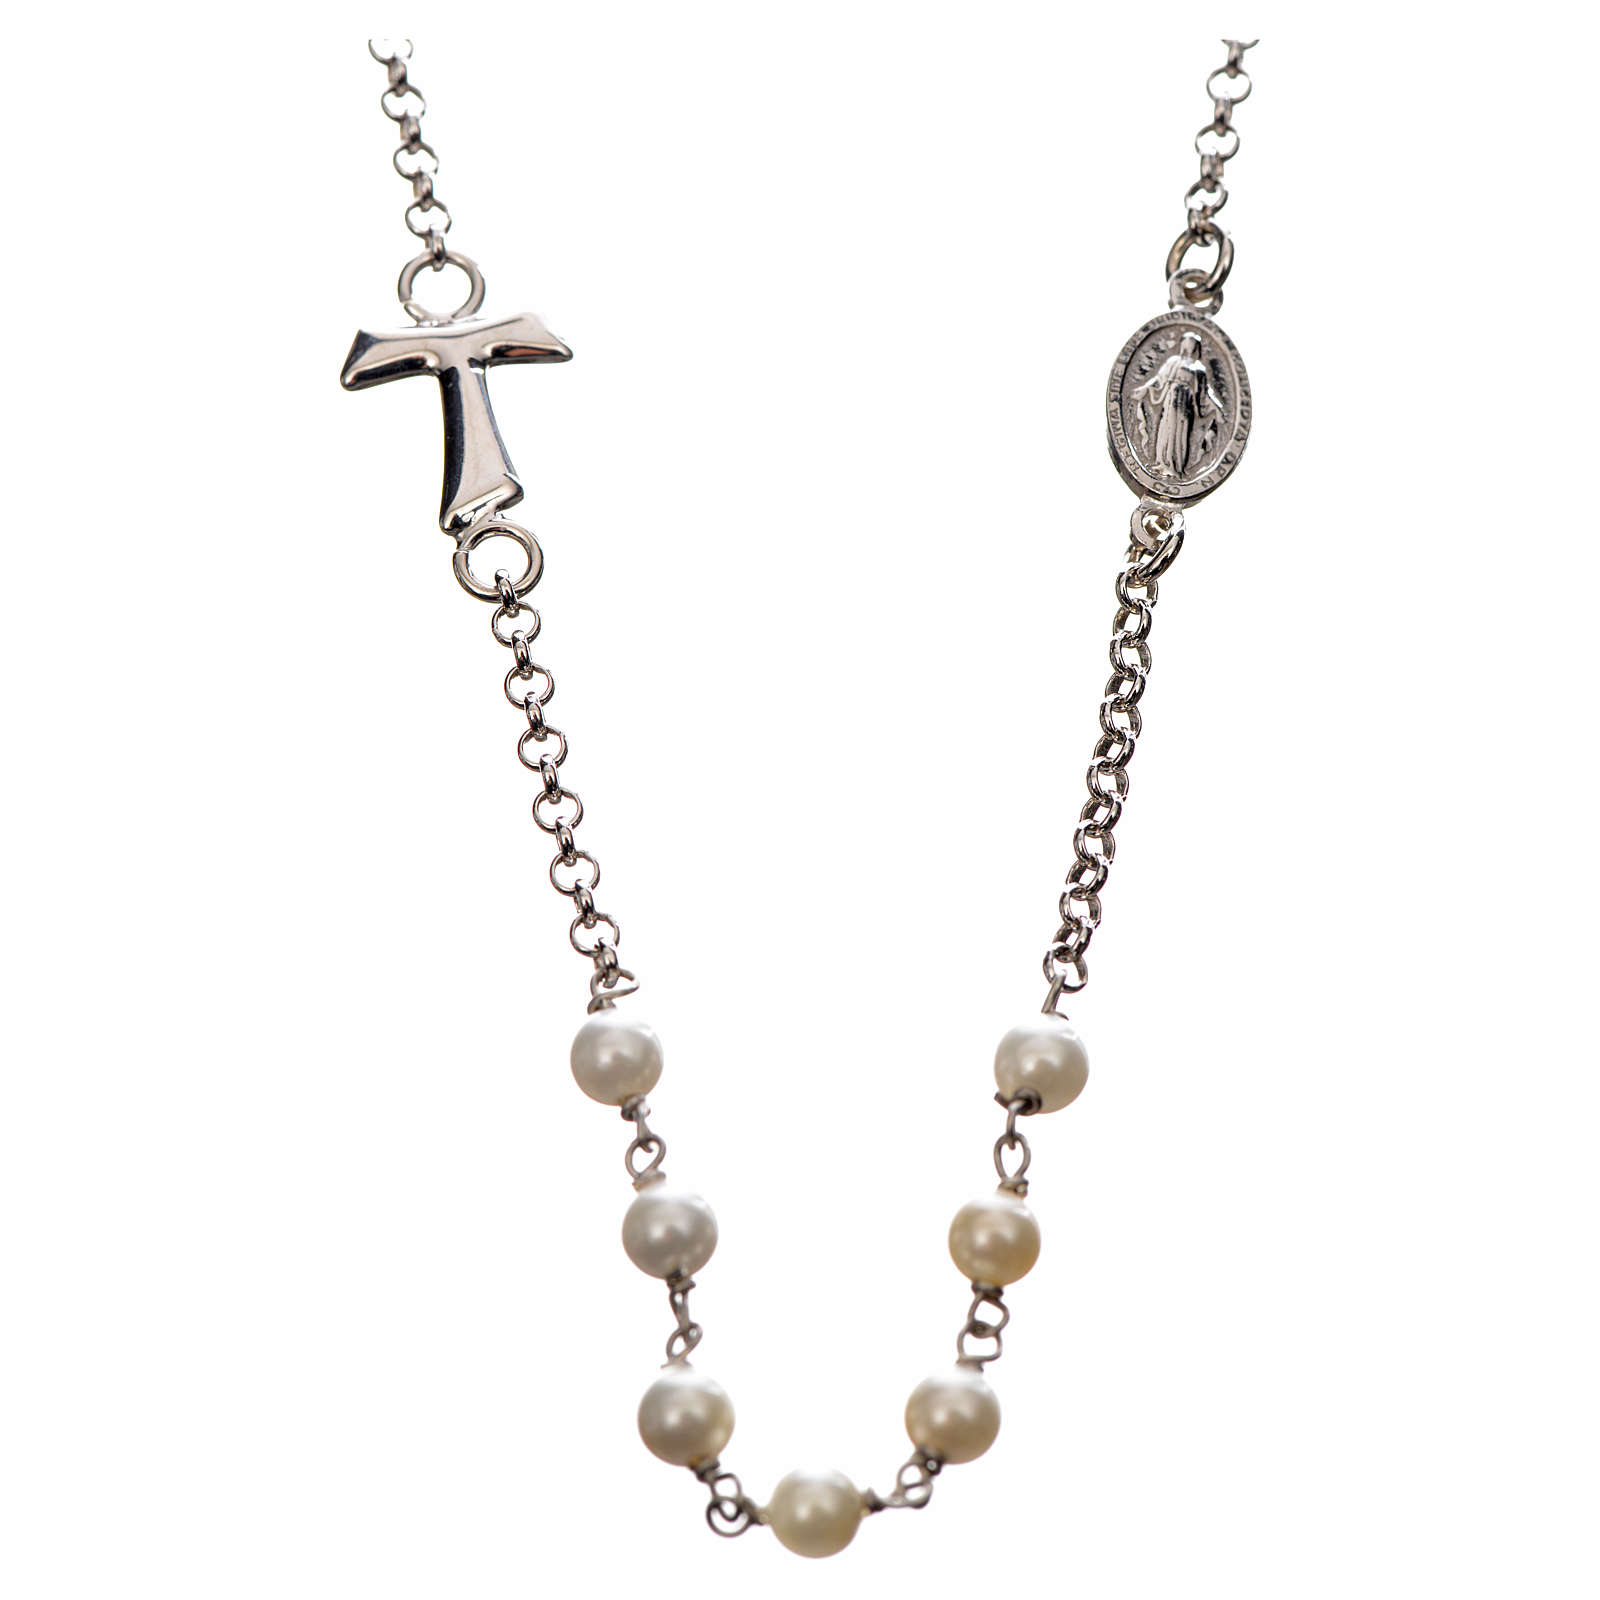 Silver necklace with Tau cross and white pearls, MATER jewels 4